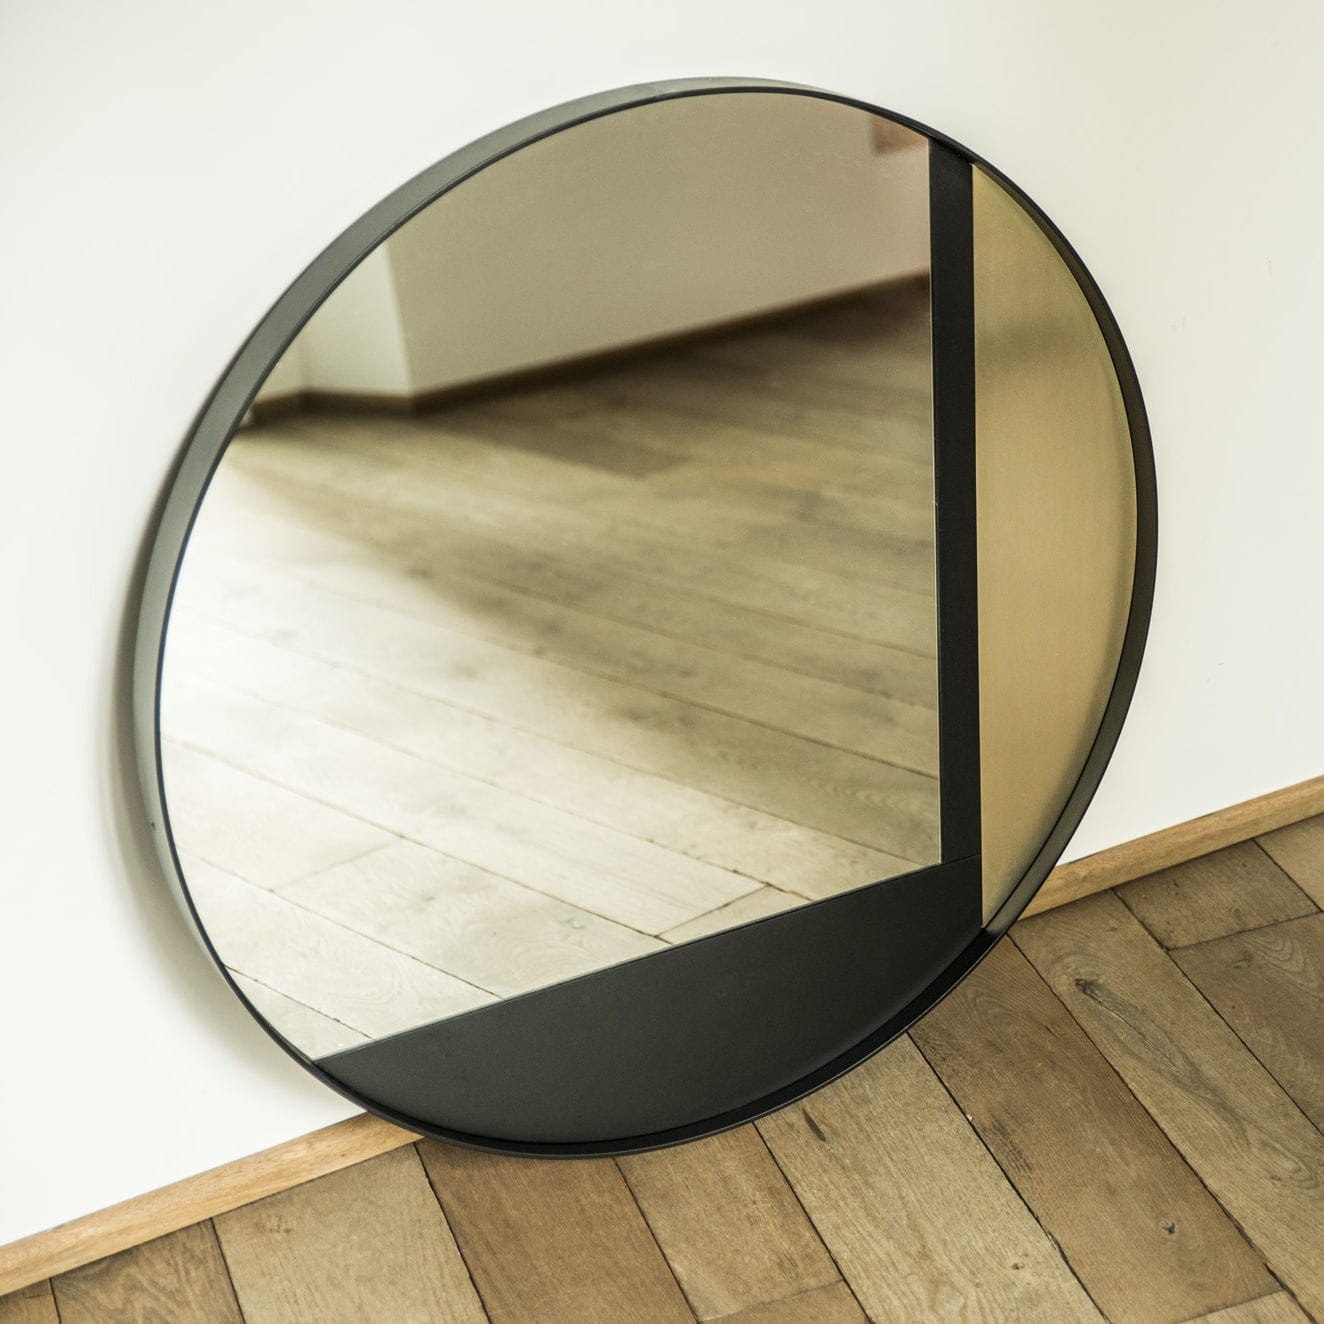 wallmounted mirror  contemporary  round  commercial  ed  - wallmounted mirror  contemporary  round  commercial  ed